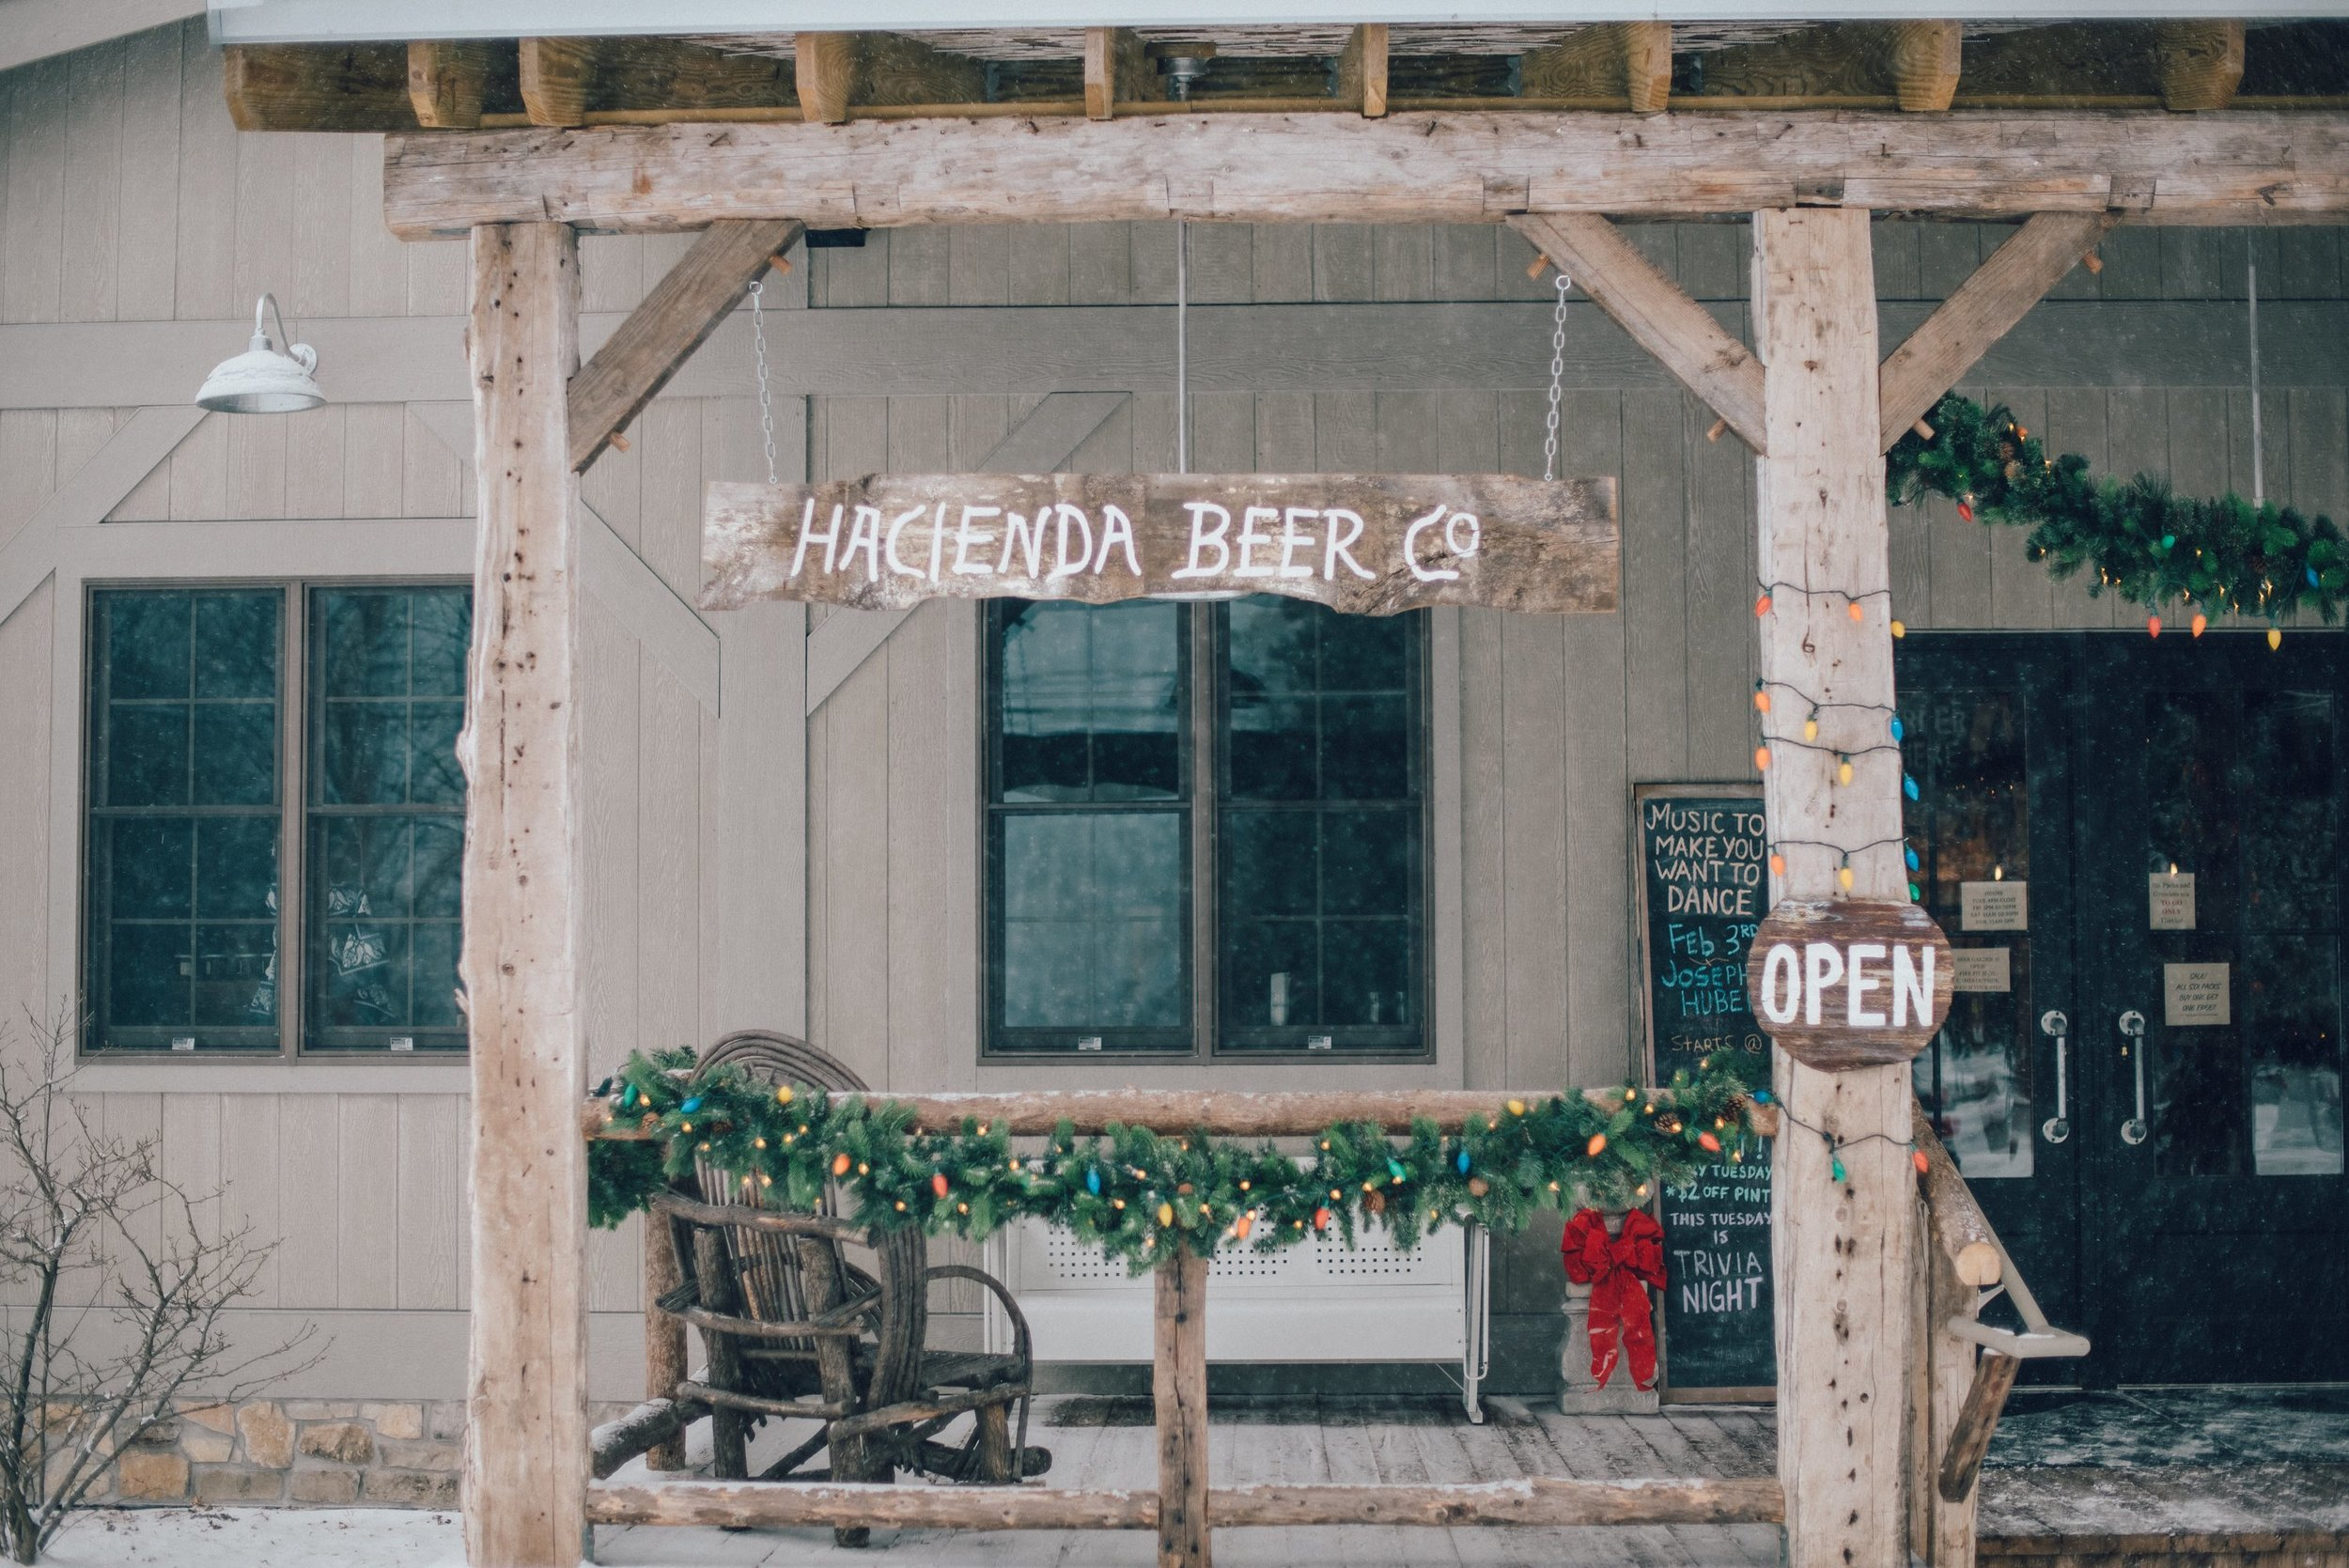 Hacienda-Beer-Co-Launch-Party-Door-County-Brewing-2.jpg